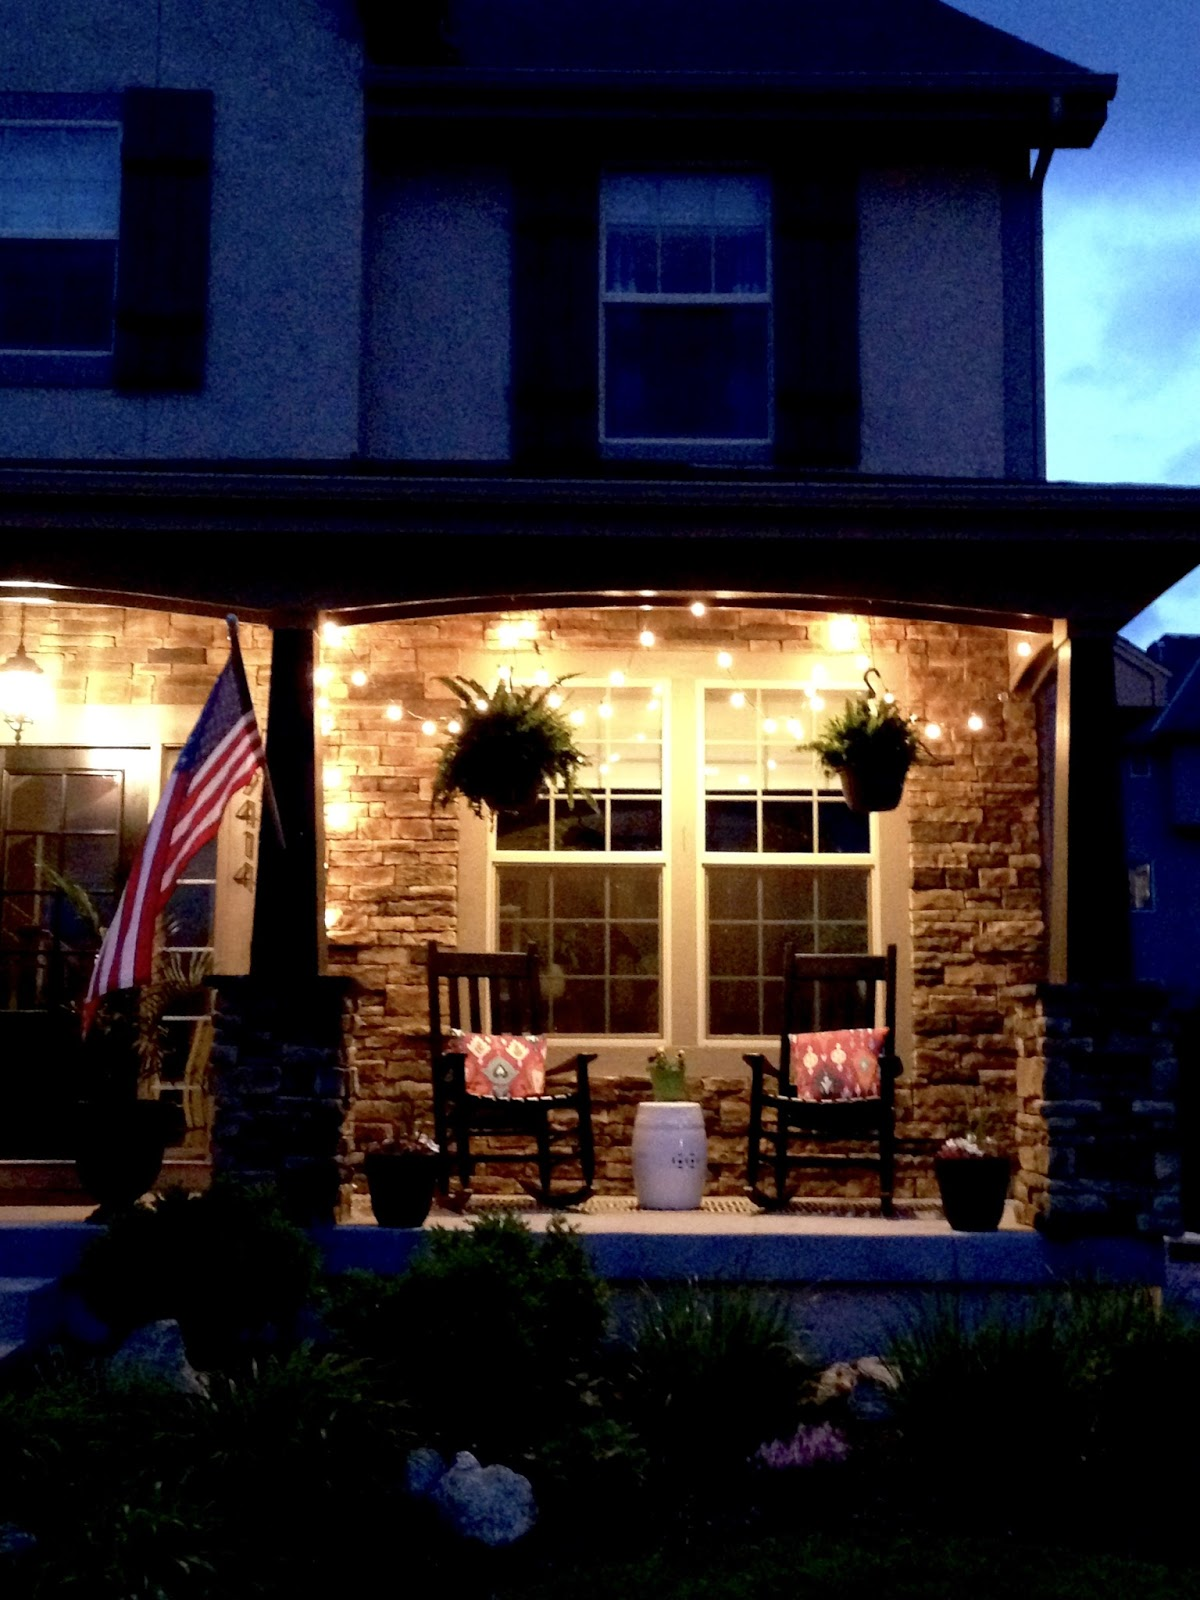 Life Love Larson String Lights on the Front Porch